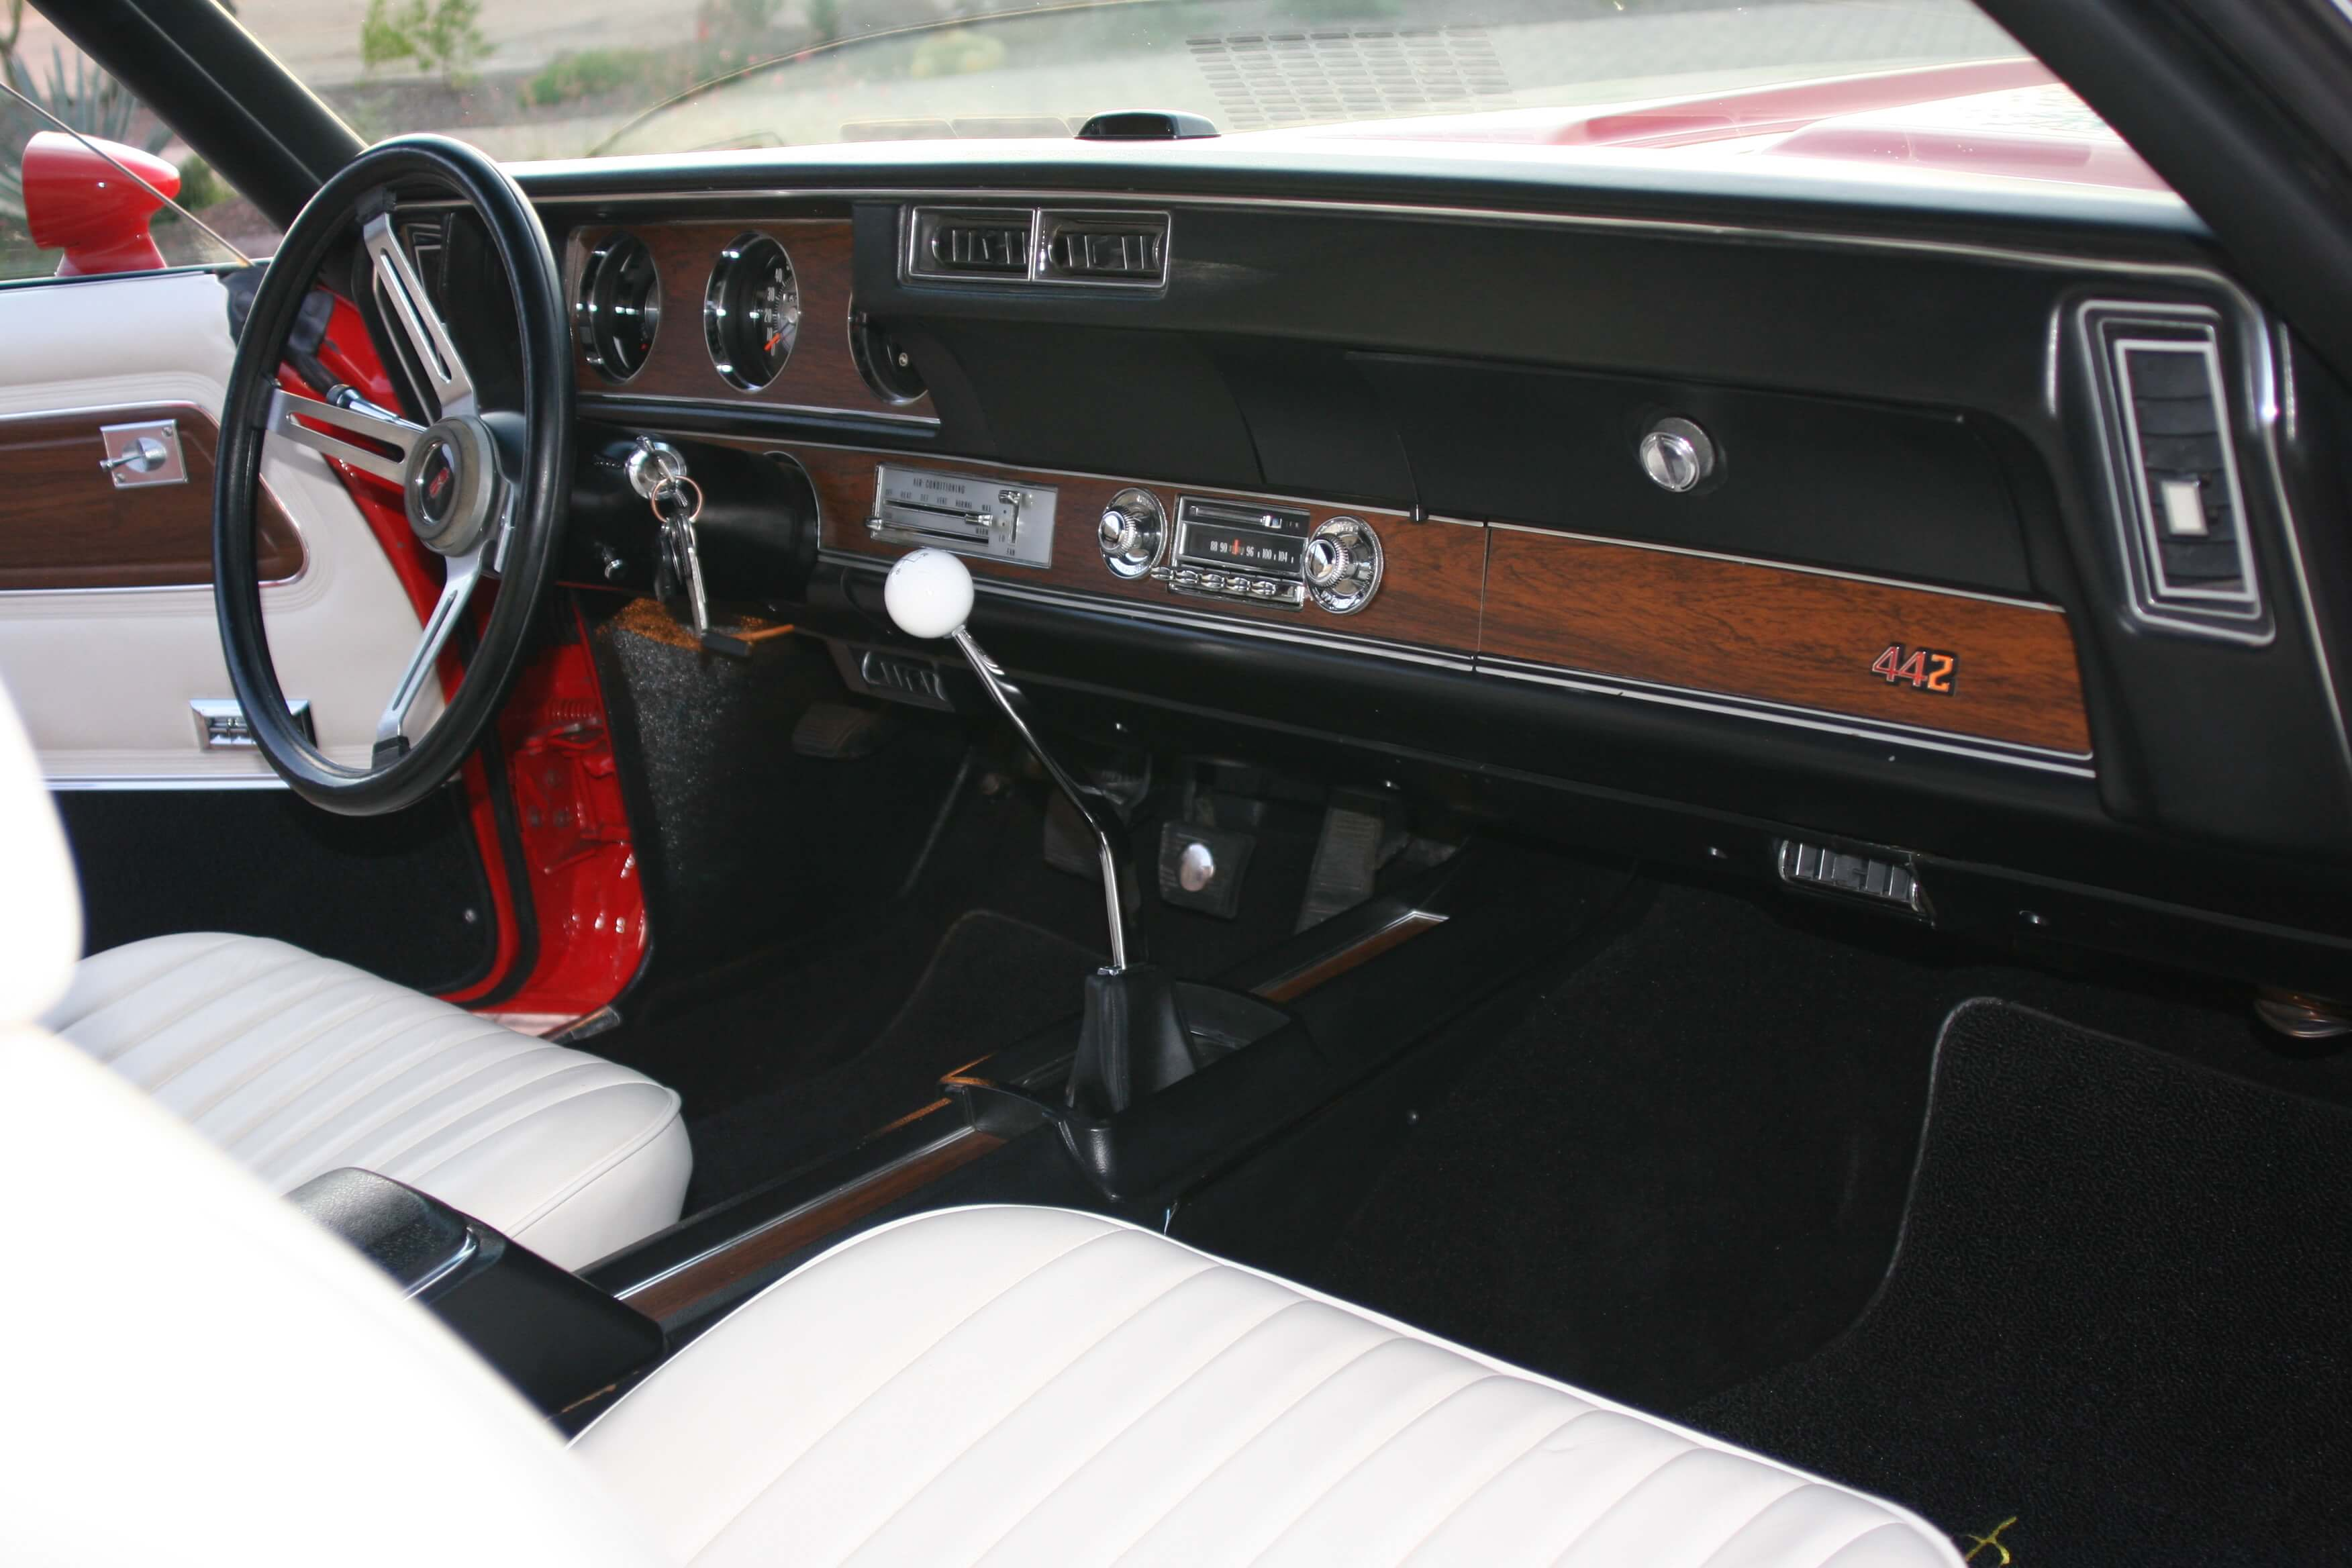 Bob's 1970 olds 442 - Hot Rods by Dean